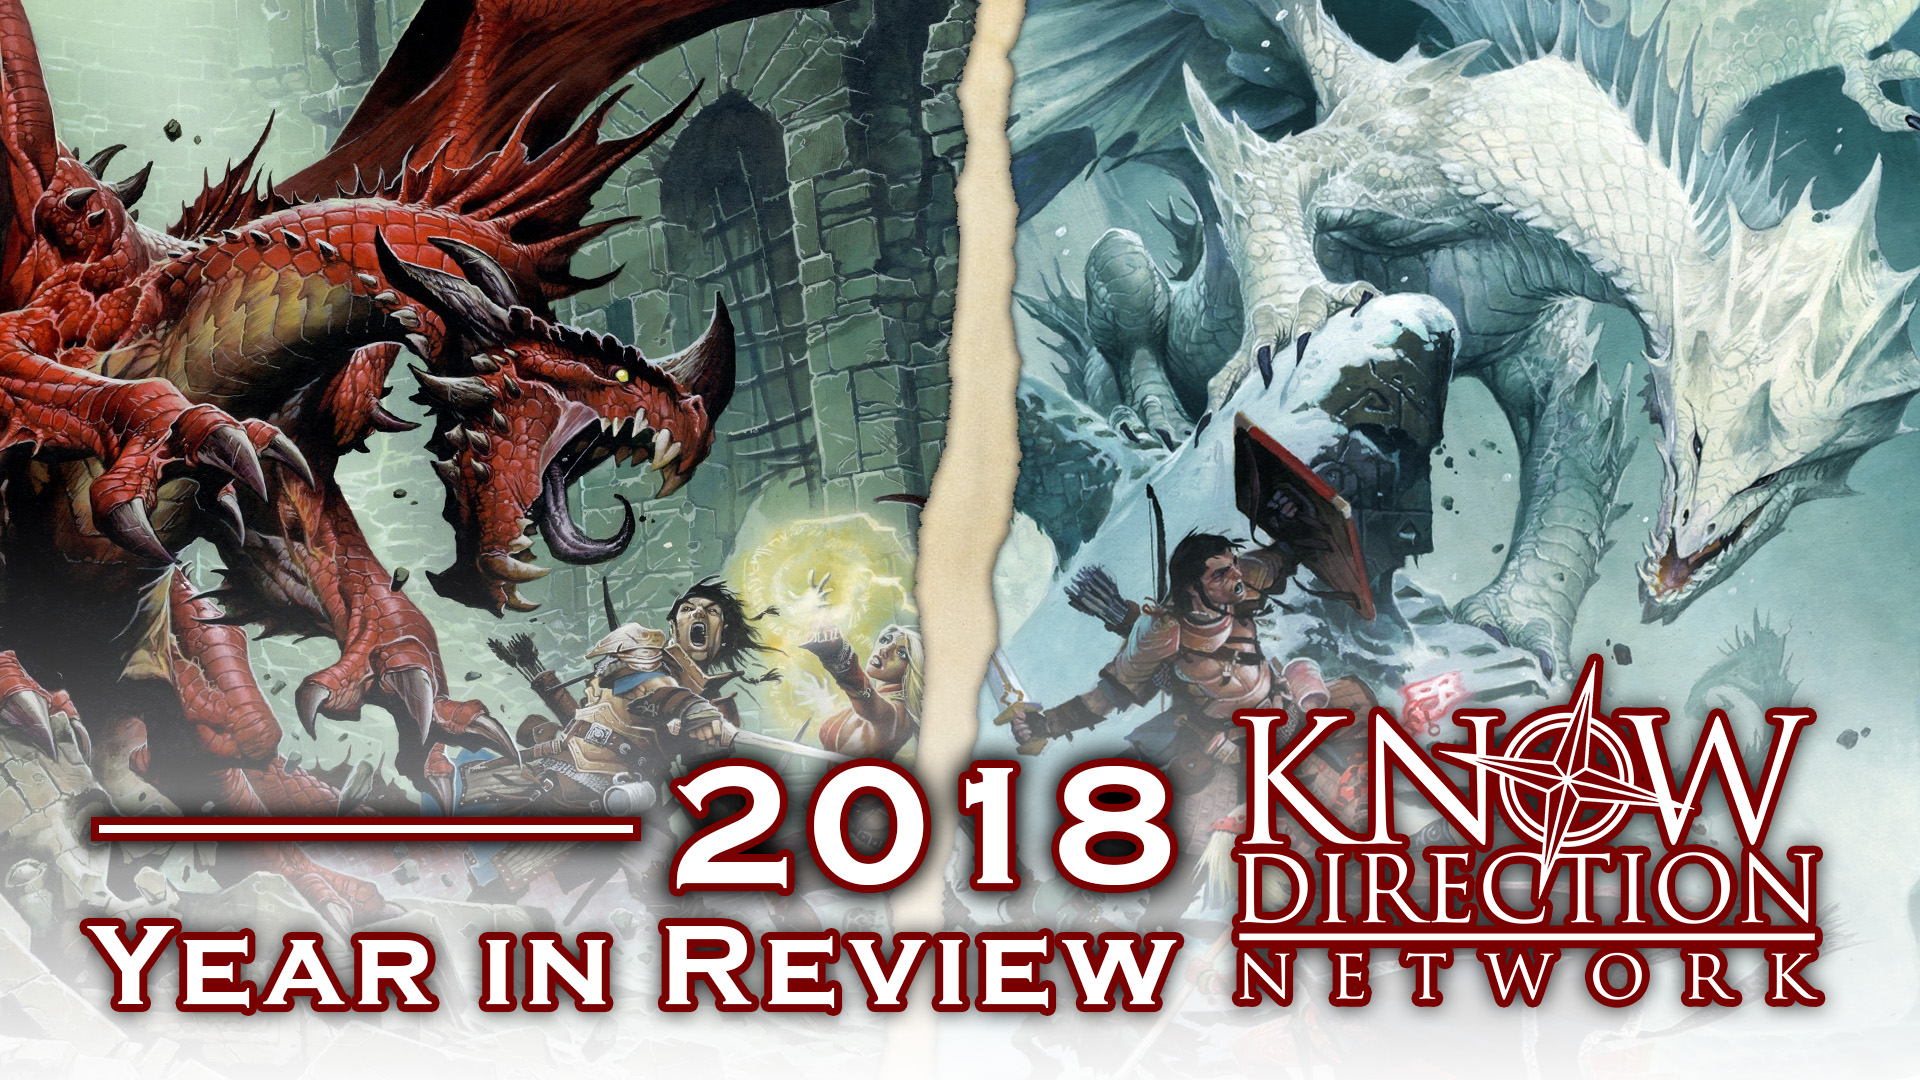 Know Direction 2018 Year in Review